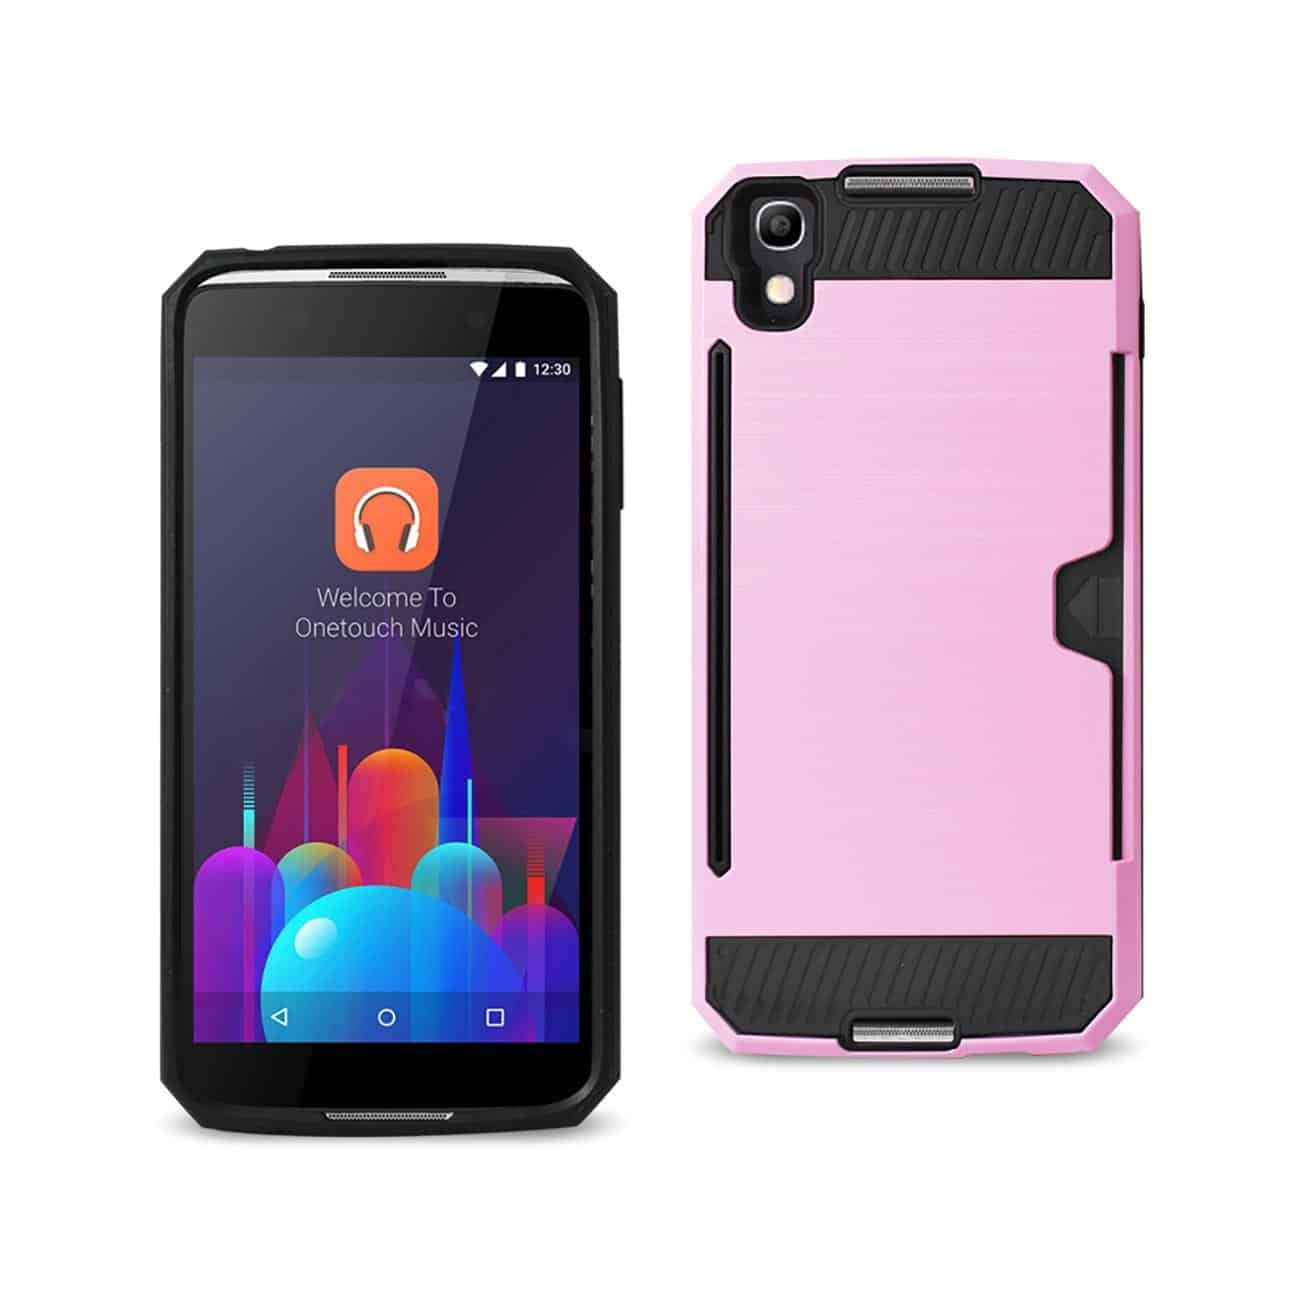 ALCATEL ONE TOUCH IDOL 4 SLIM ARMOR HYBRID CASE WITH CARD HOLDER IN PINK